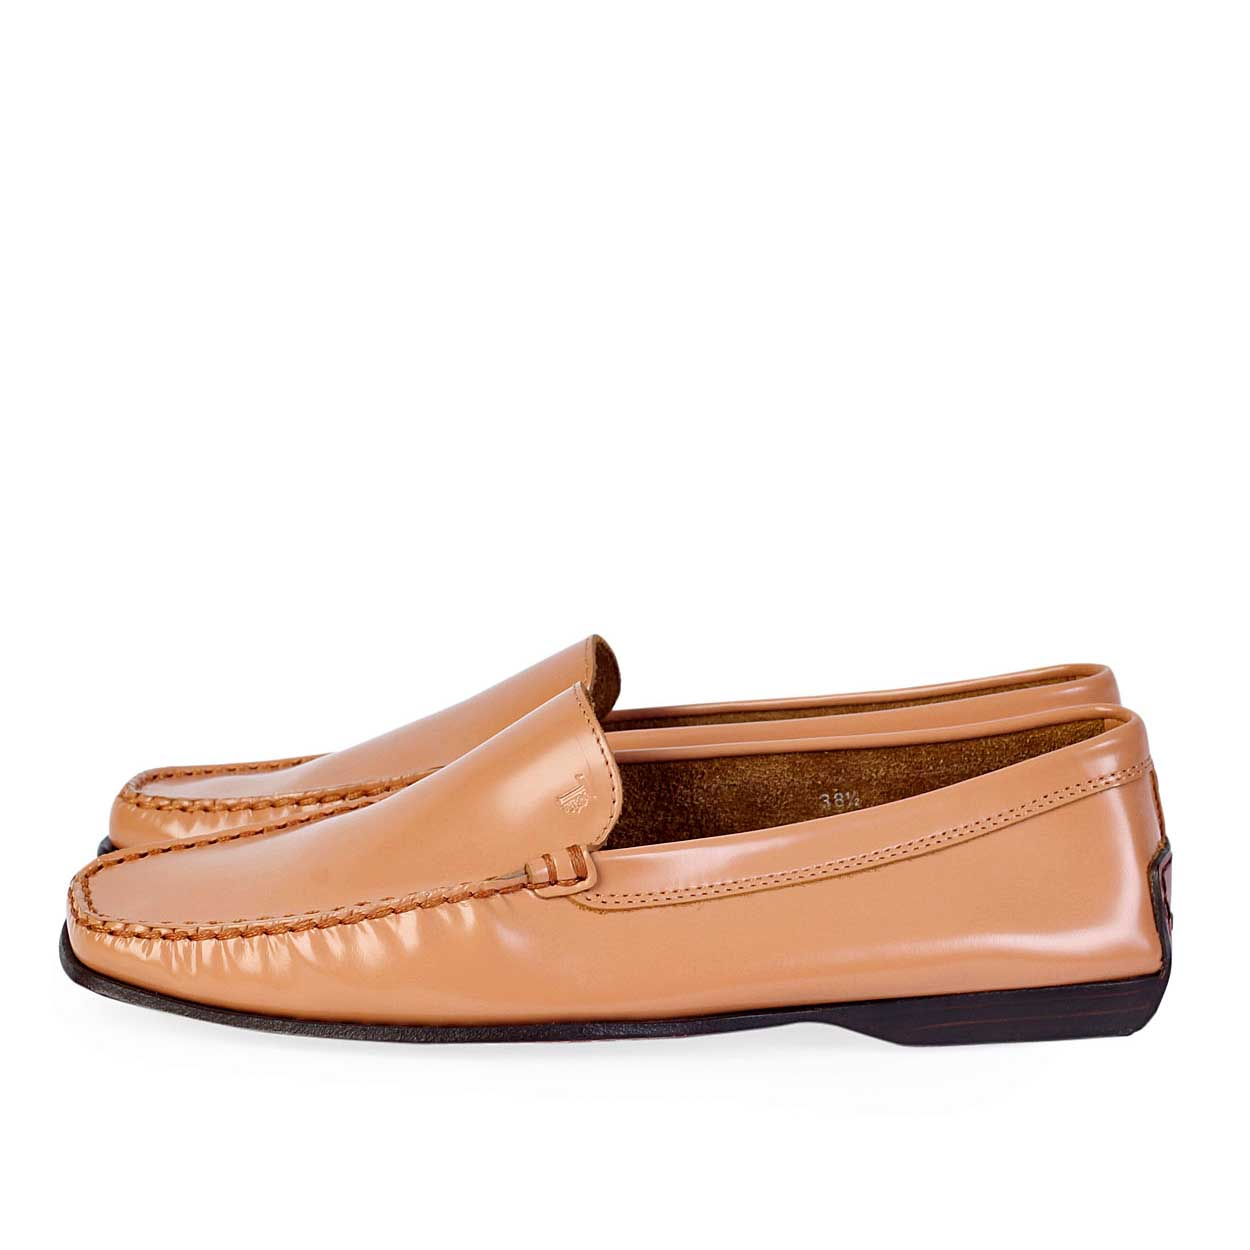 tods brown leather womens loafers s 38 5 5 5 luxity